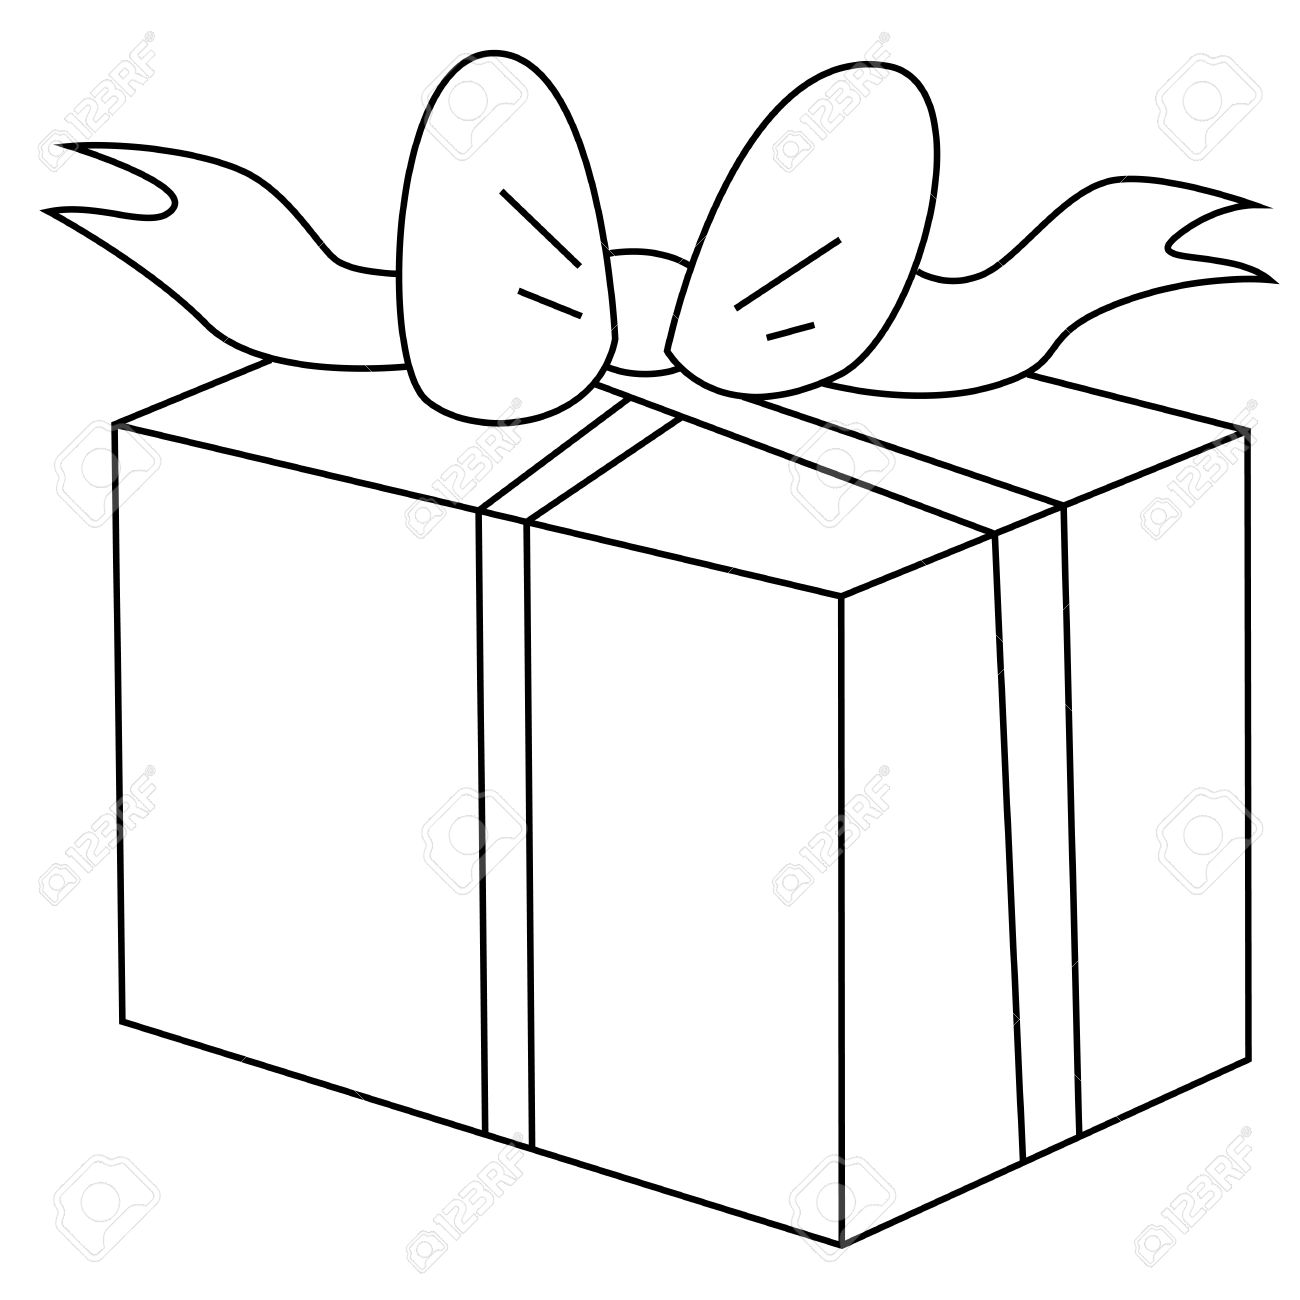 Black Outline Vector Gift Box On White Background Royalty Free